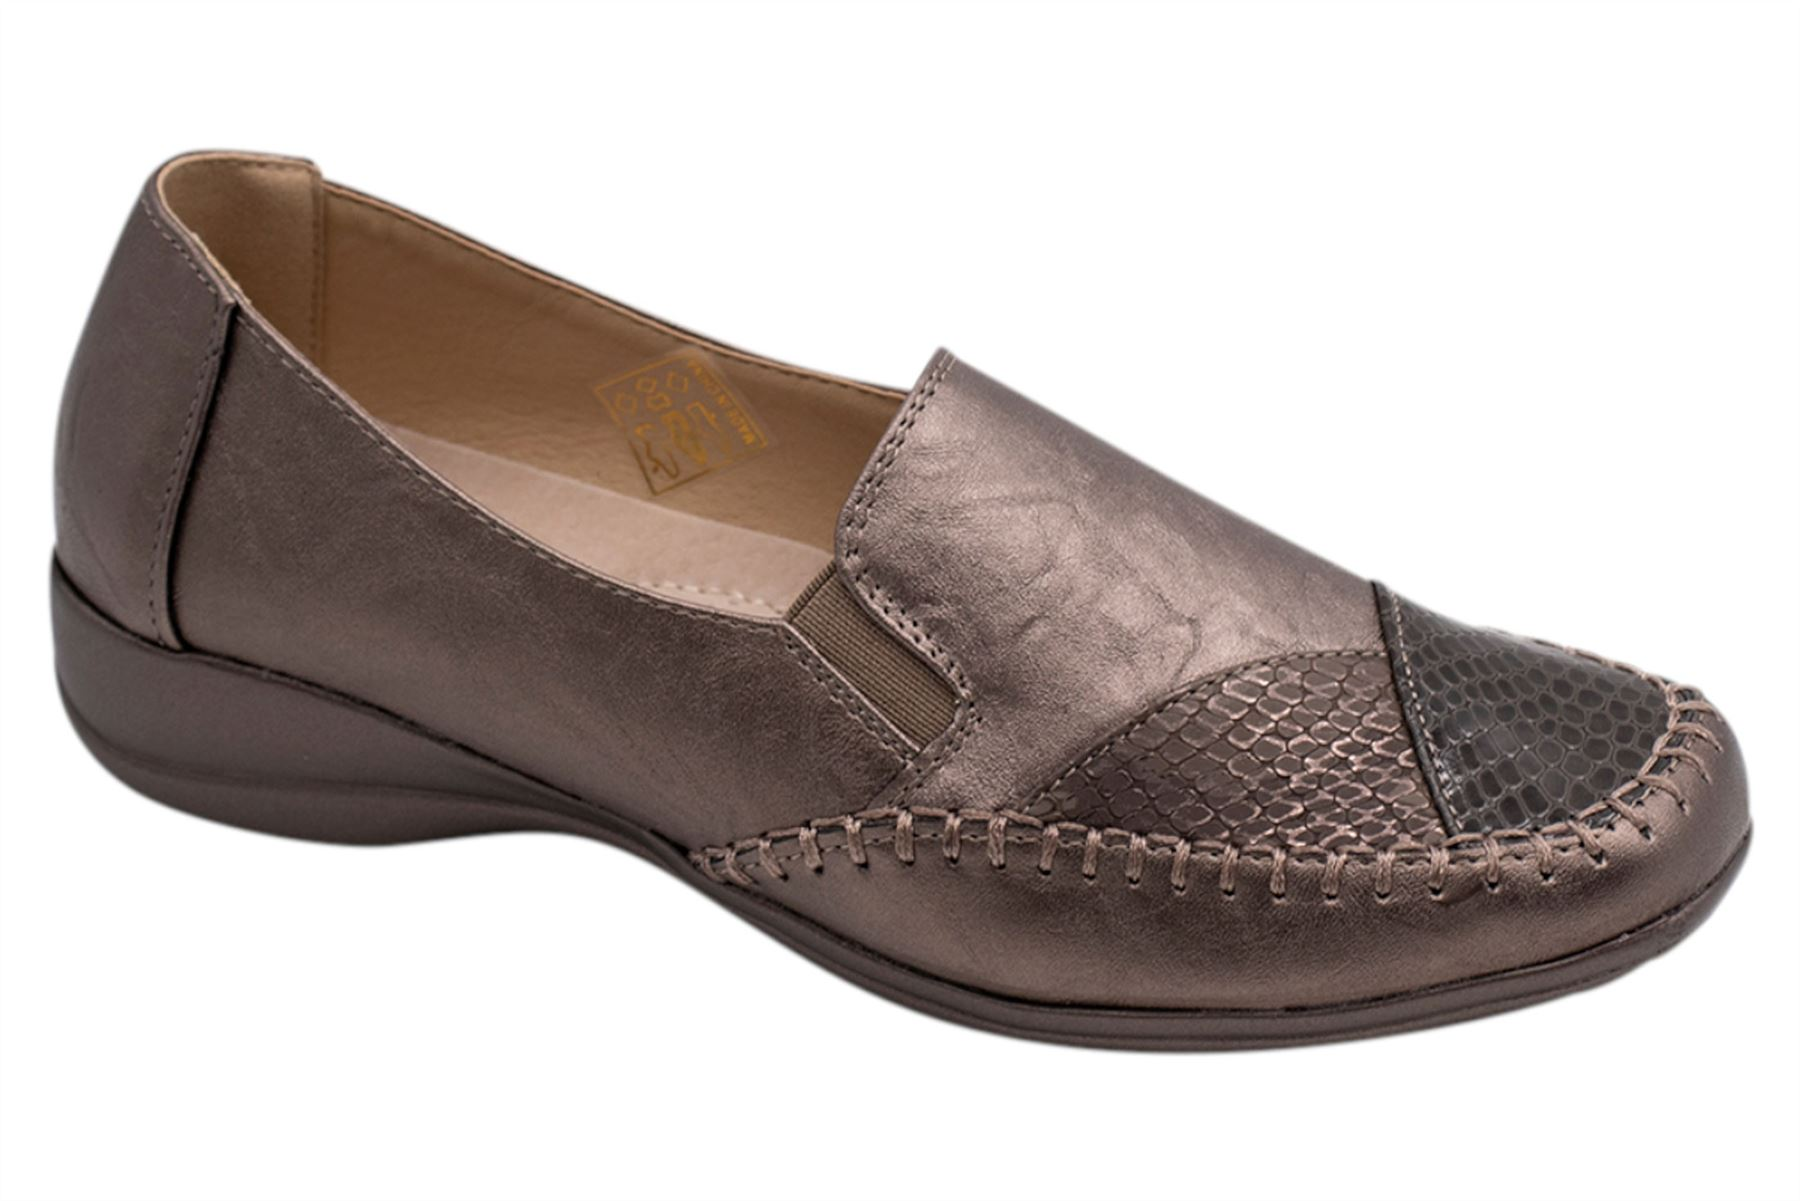 Womens-Flat-Shoes-Ladies-Pumps-Office-Work-Casual-Slip-On-Loafer-Size thumbnail 30